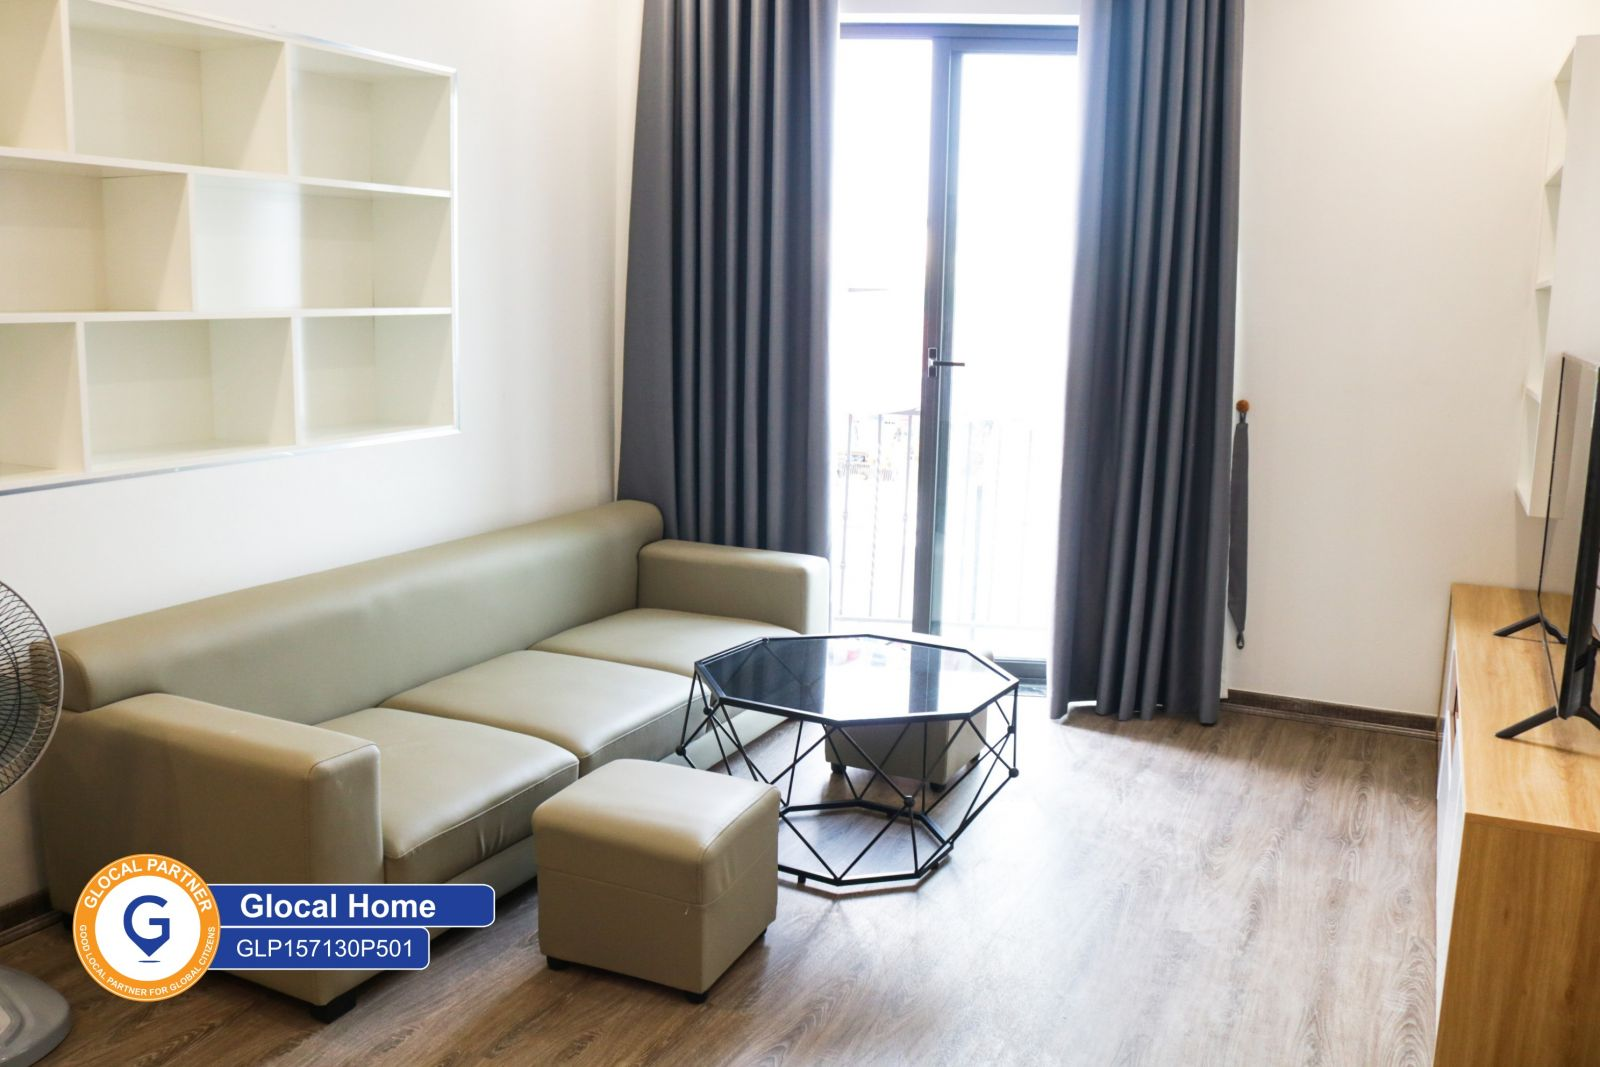 New fully furnished 1 bedroom apartment in Trinh Cong Son